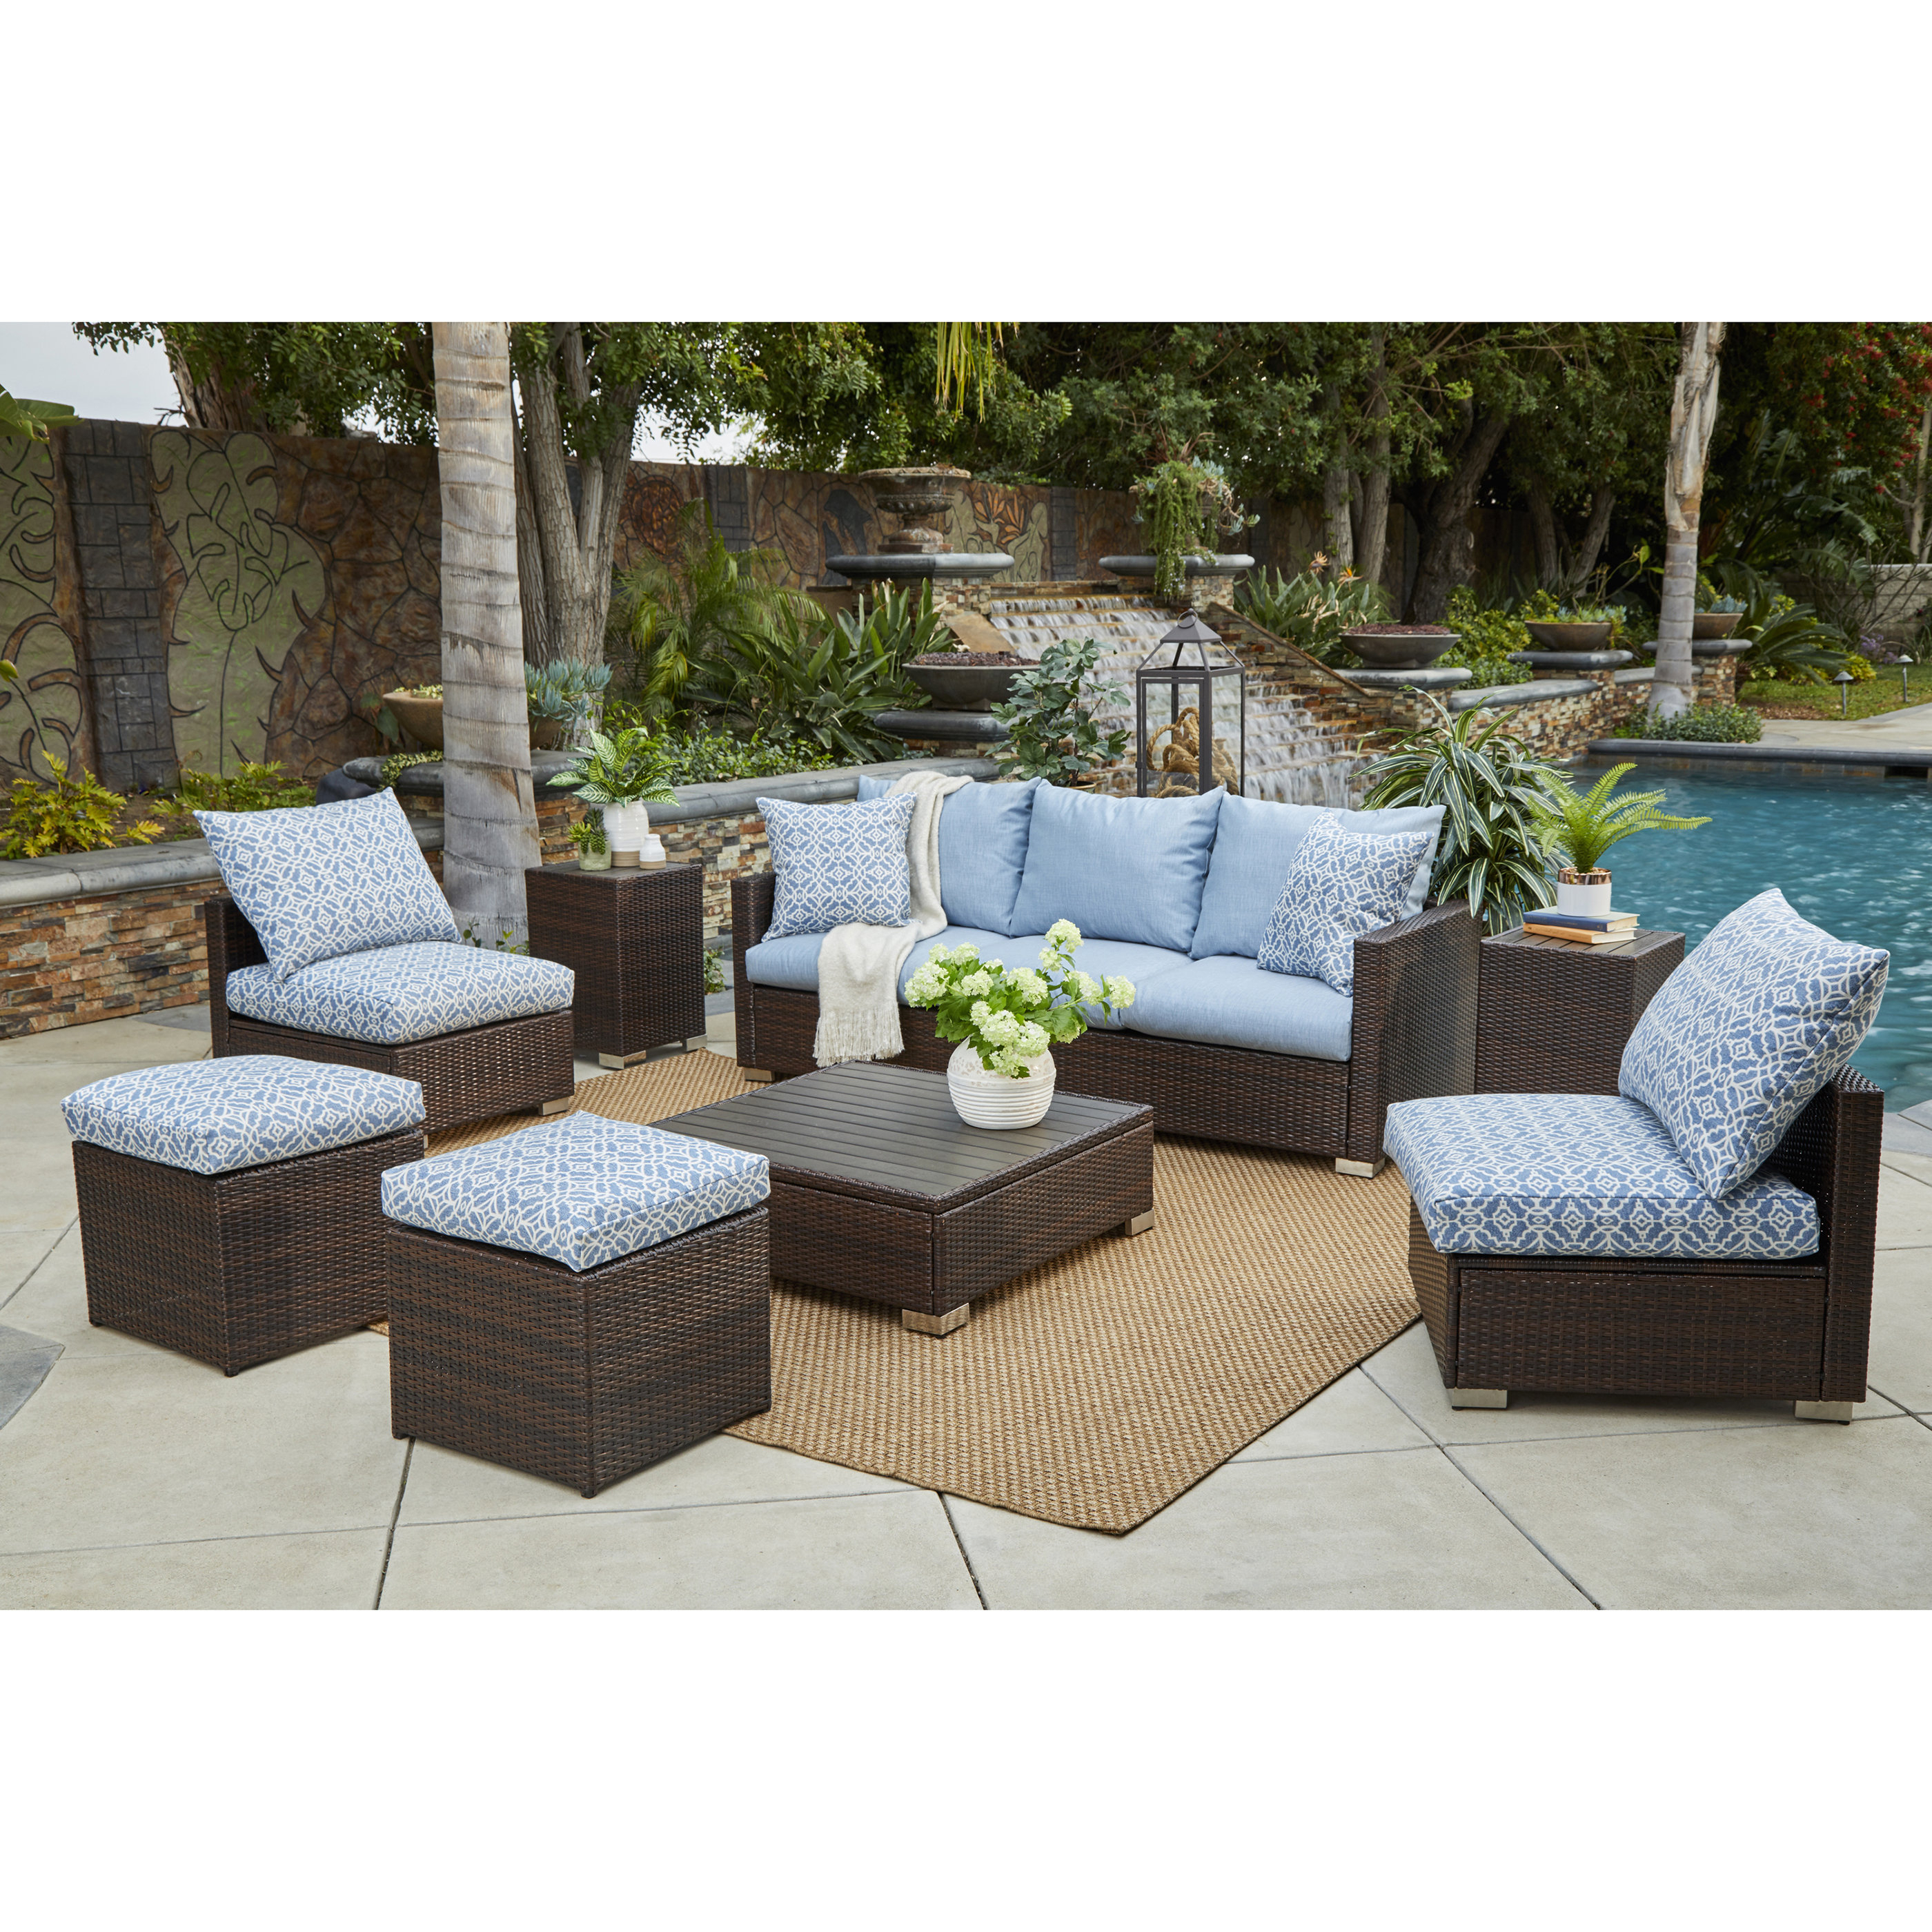 Mcmanis 8 Piece Rattan Sofa Seating Group With Sunbrella Cushions Regarding Most Popular Mcmanis Patio Sofas With Cushion (View 7 of 20)